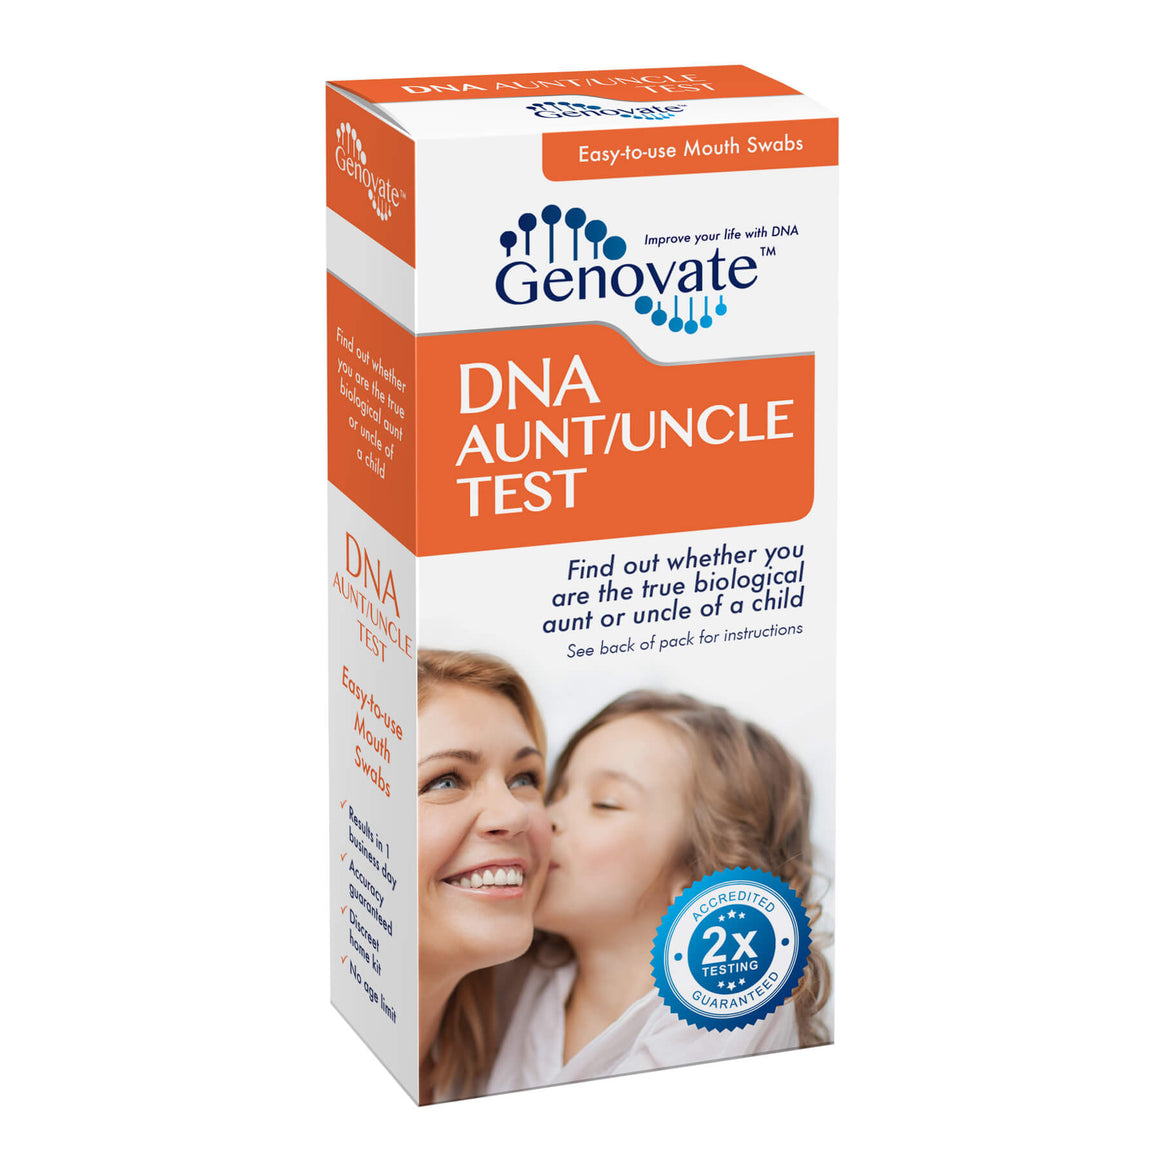 DNA Aunt/Uncle Test